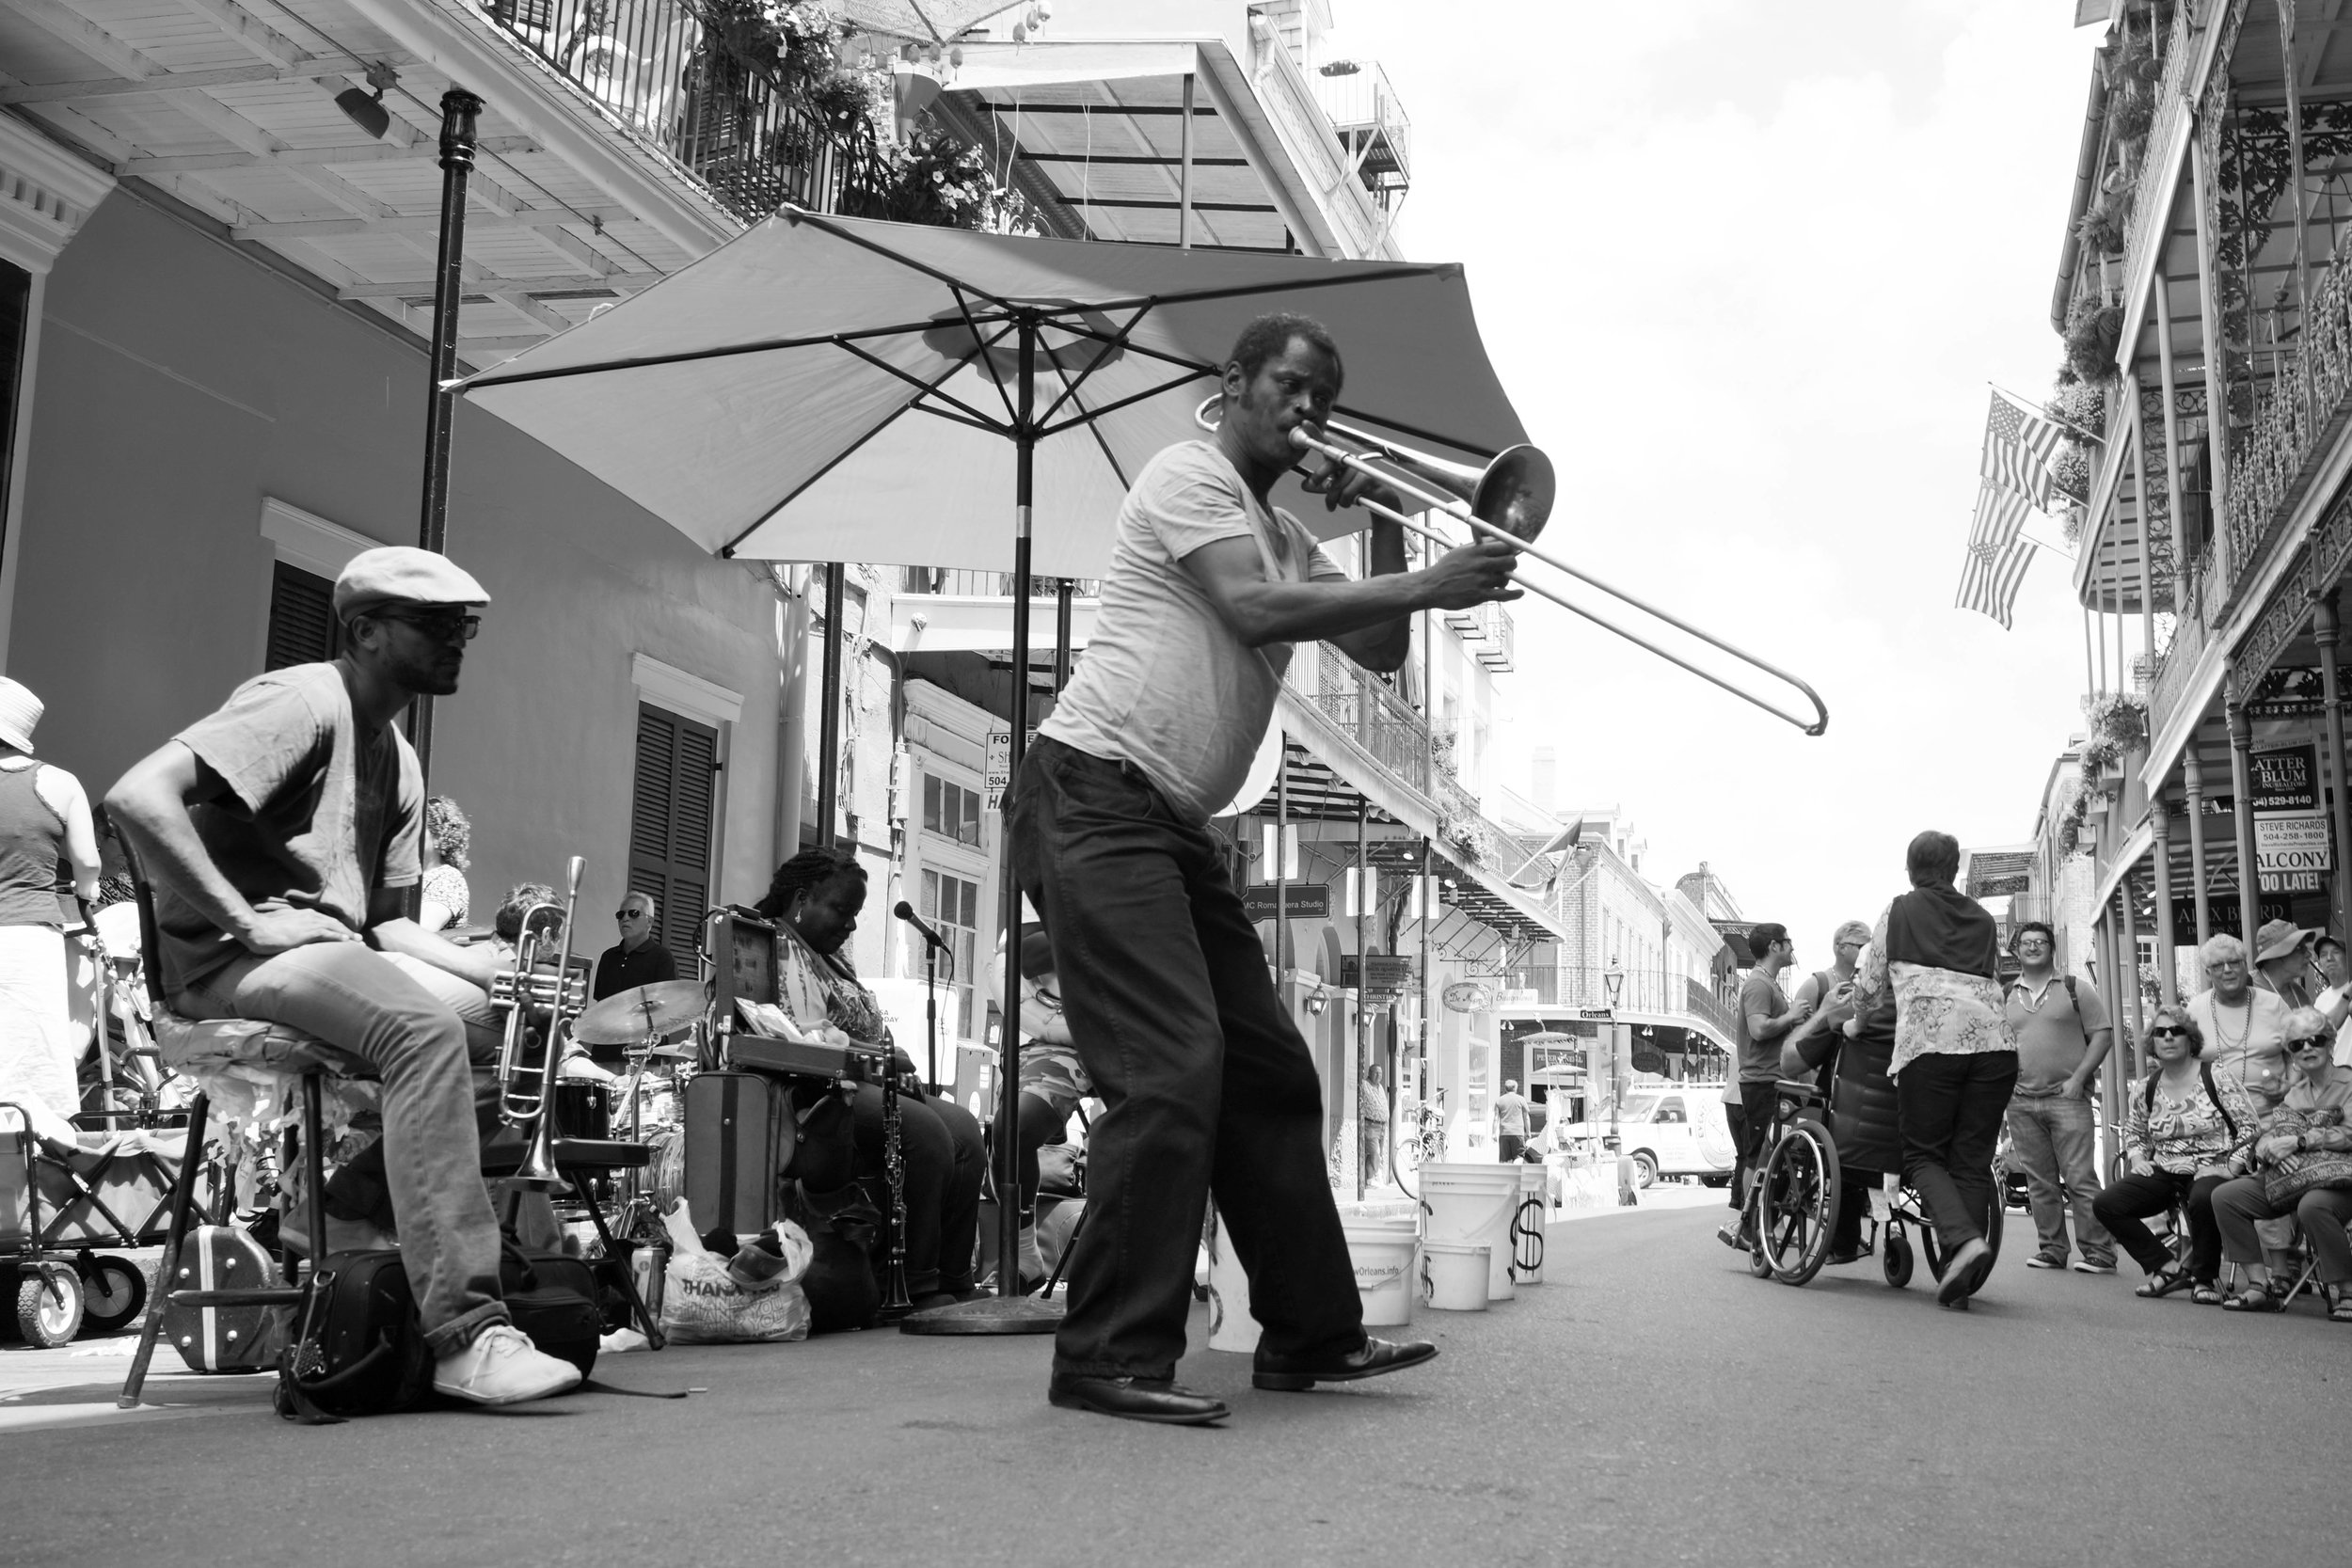 we hear music in New Orleans